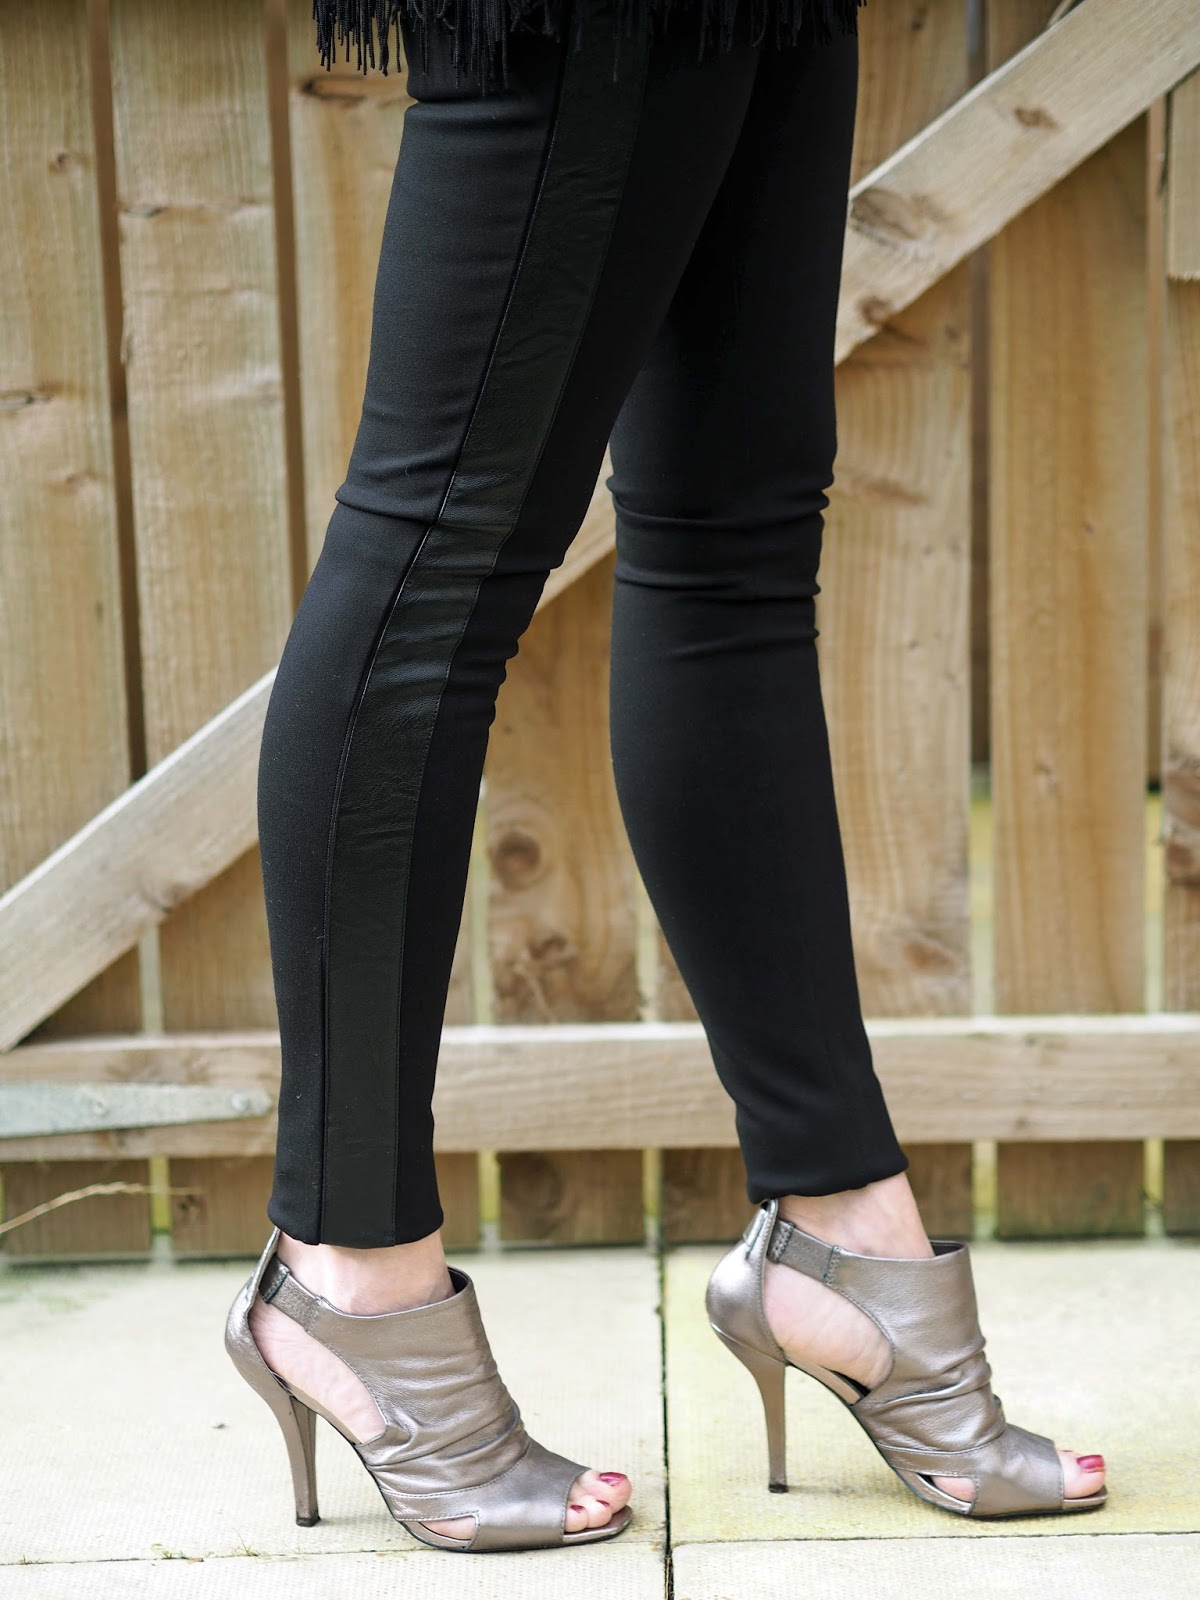 Hope narrow stretch trousers and tassel evening top with metallic clutch and metallic shoe boots